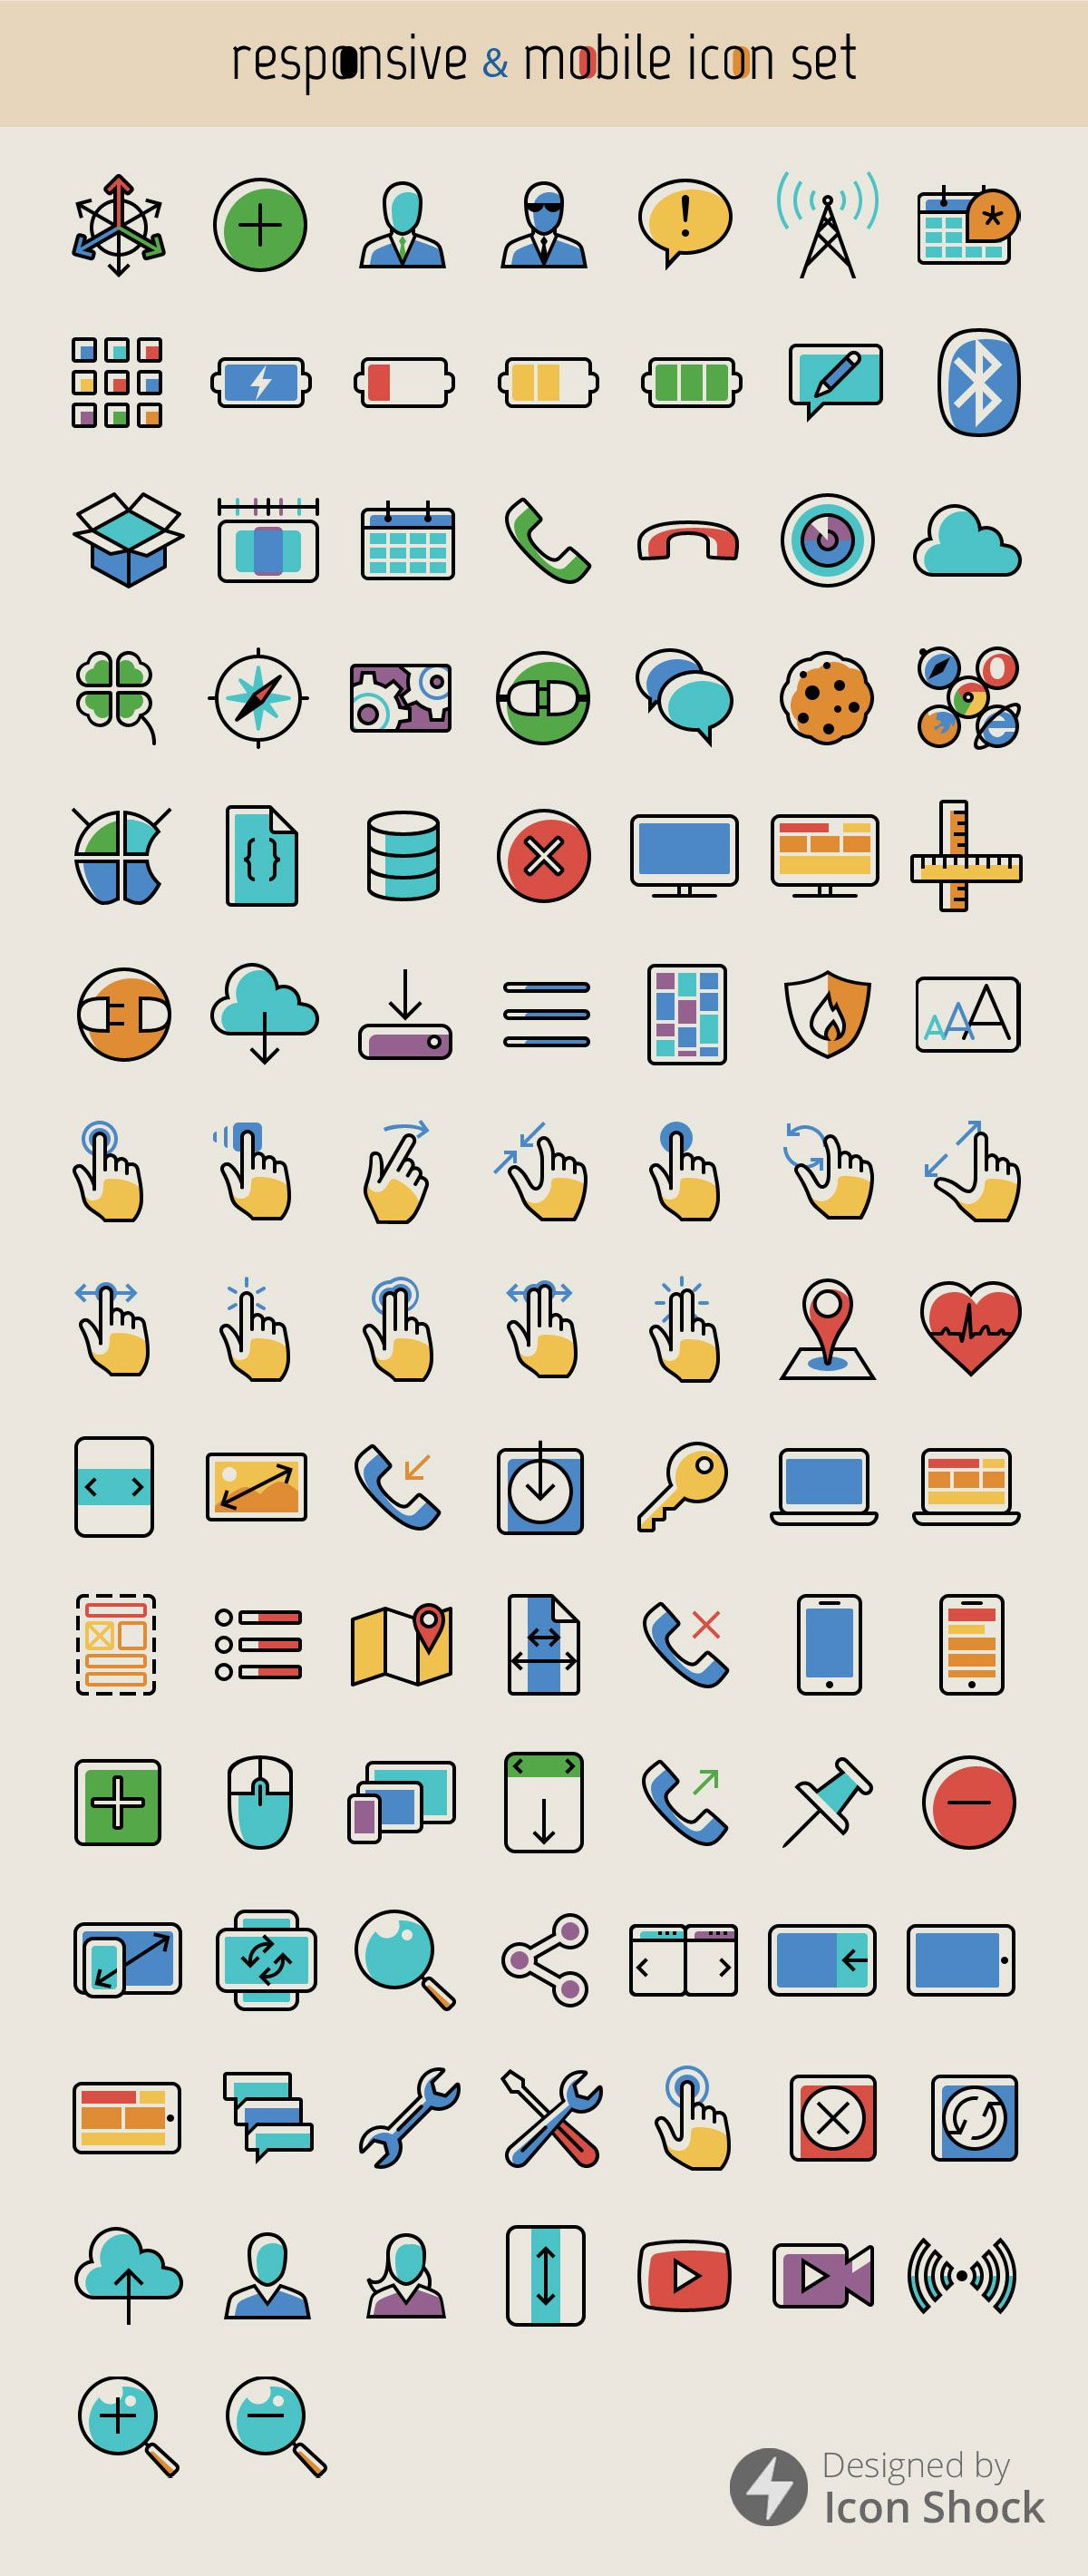 Freebie: Responsive and Mobile Icon Set (100 icons, png, psd) - Smashing Magazine